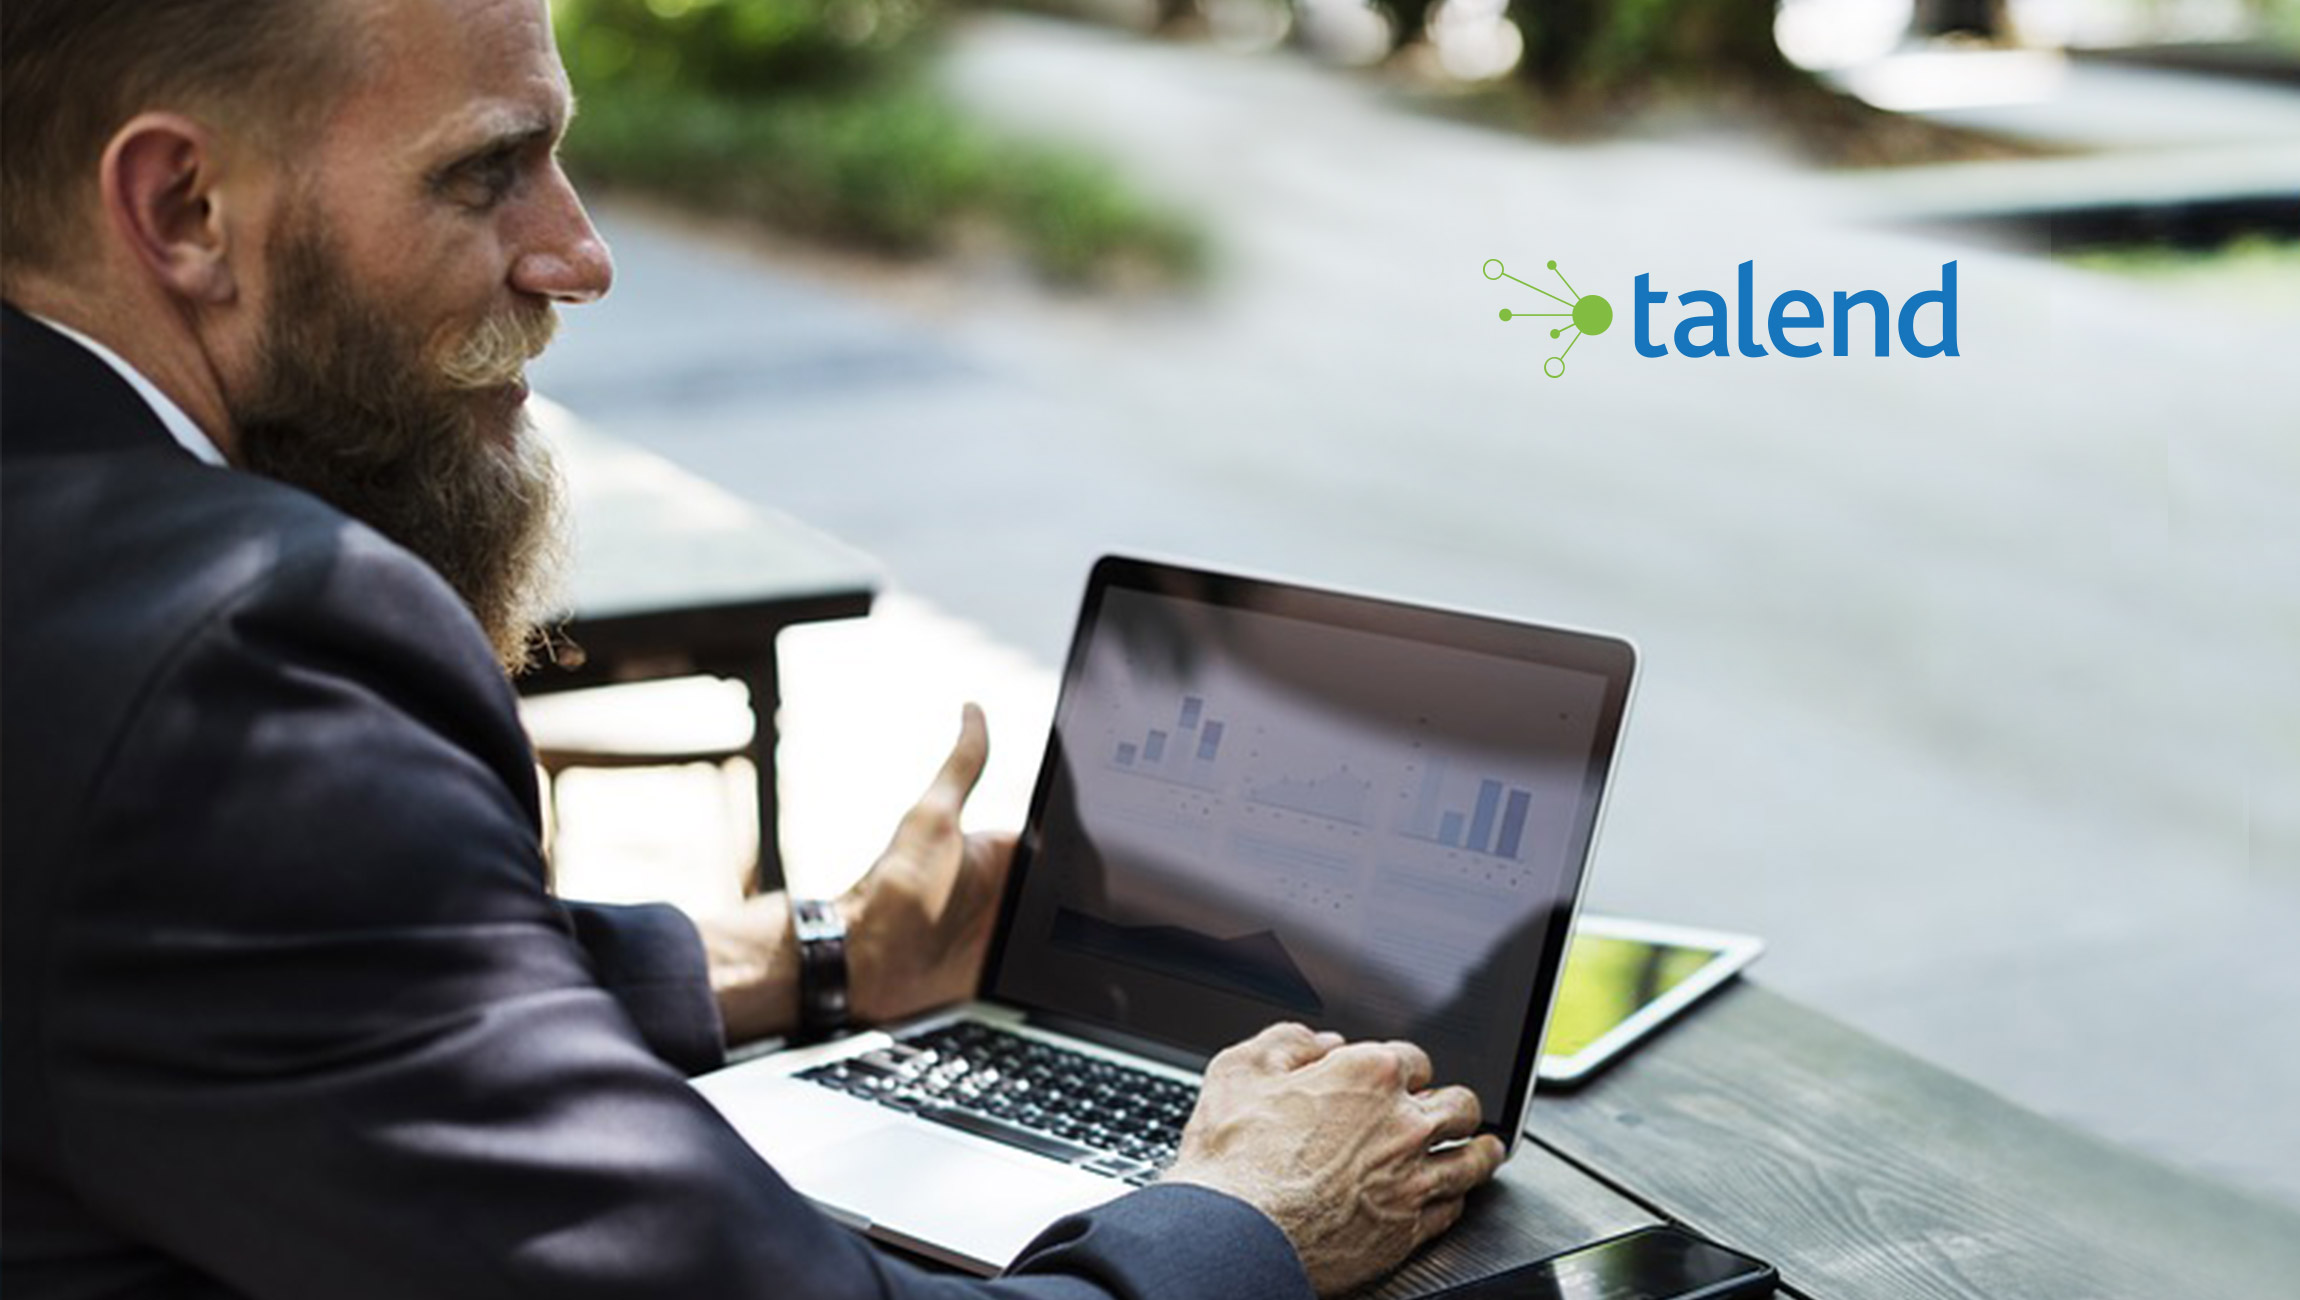 Talend Announces Management Transitions and Preliminary Revenue Estimates for the Fourth Quarter 2018